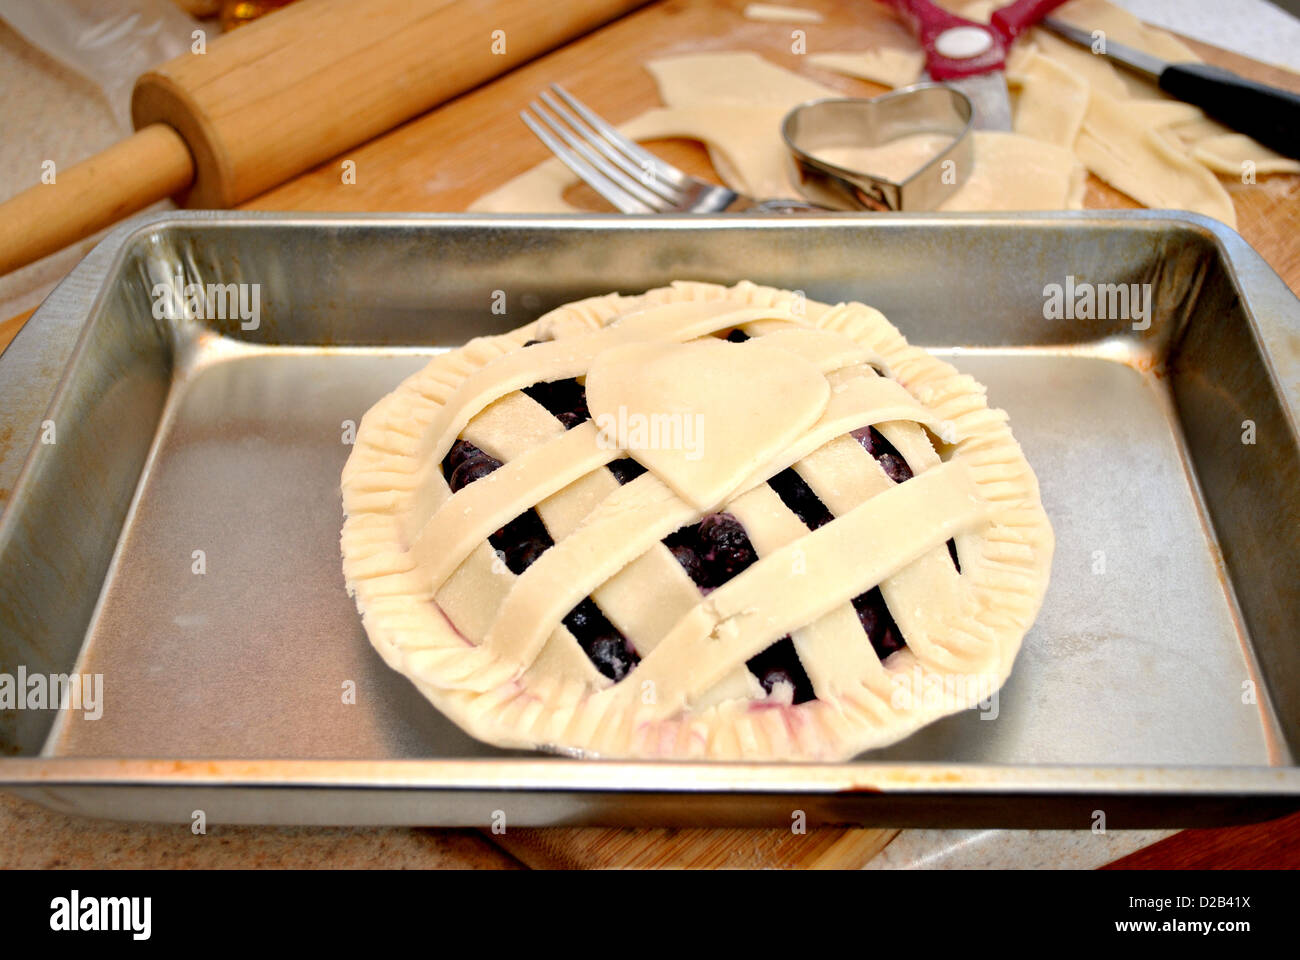 Fresh Blueberry Pie Ready for the Oven Stock Photo